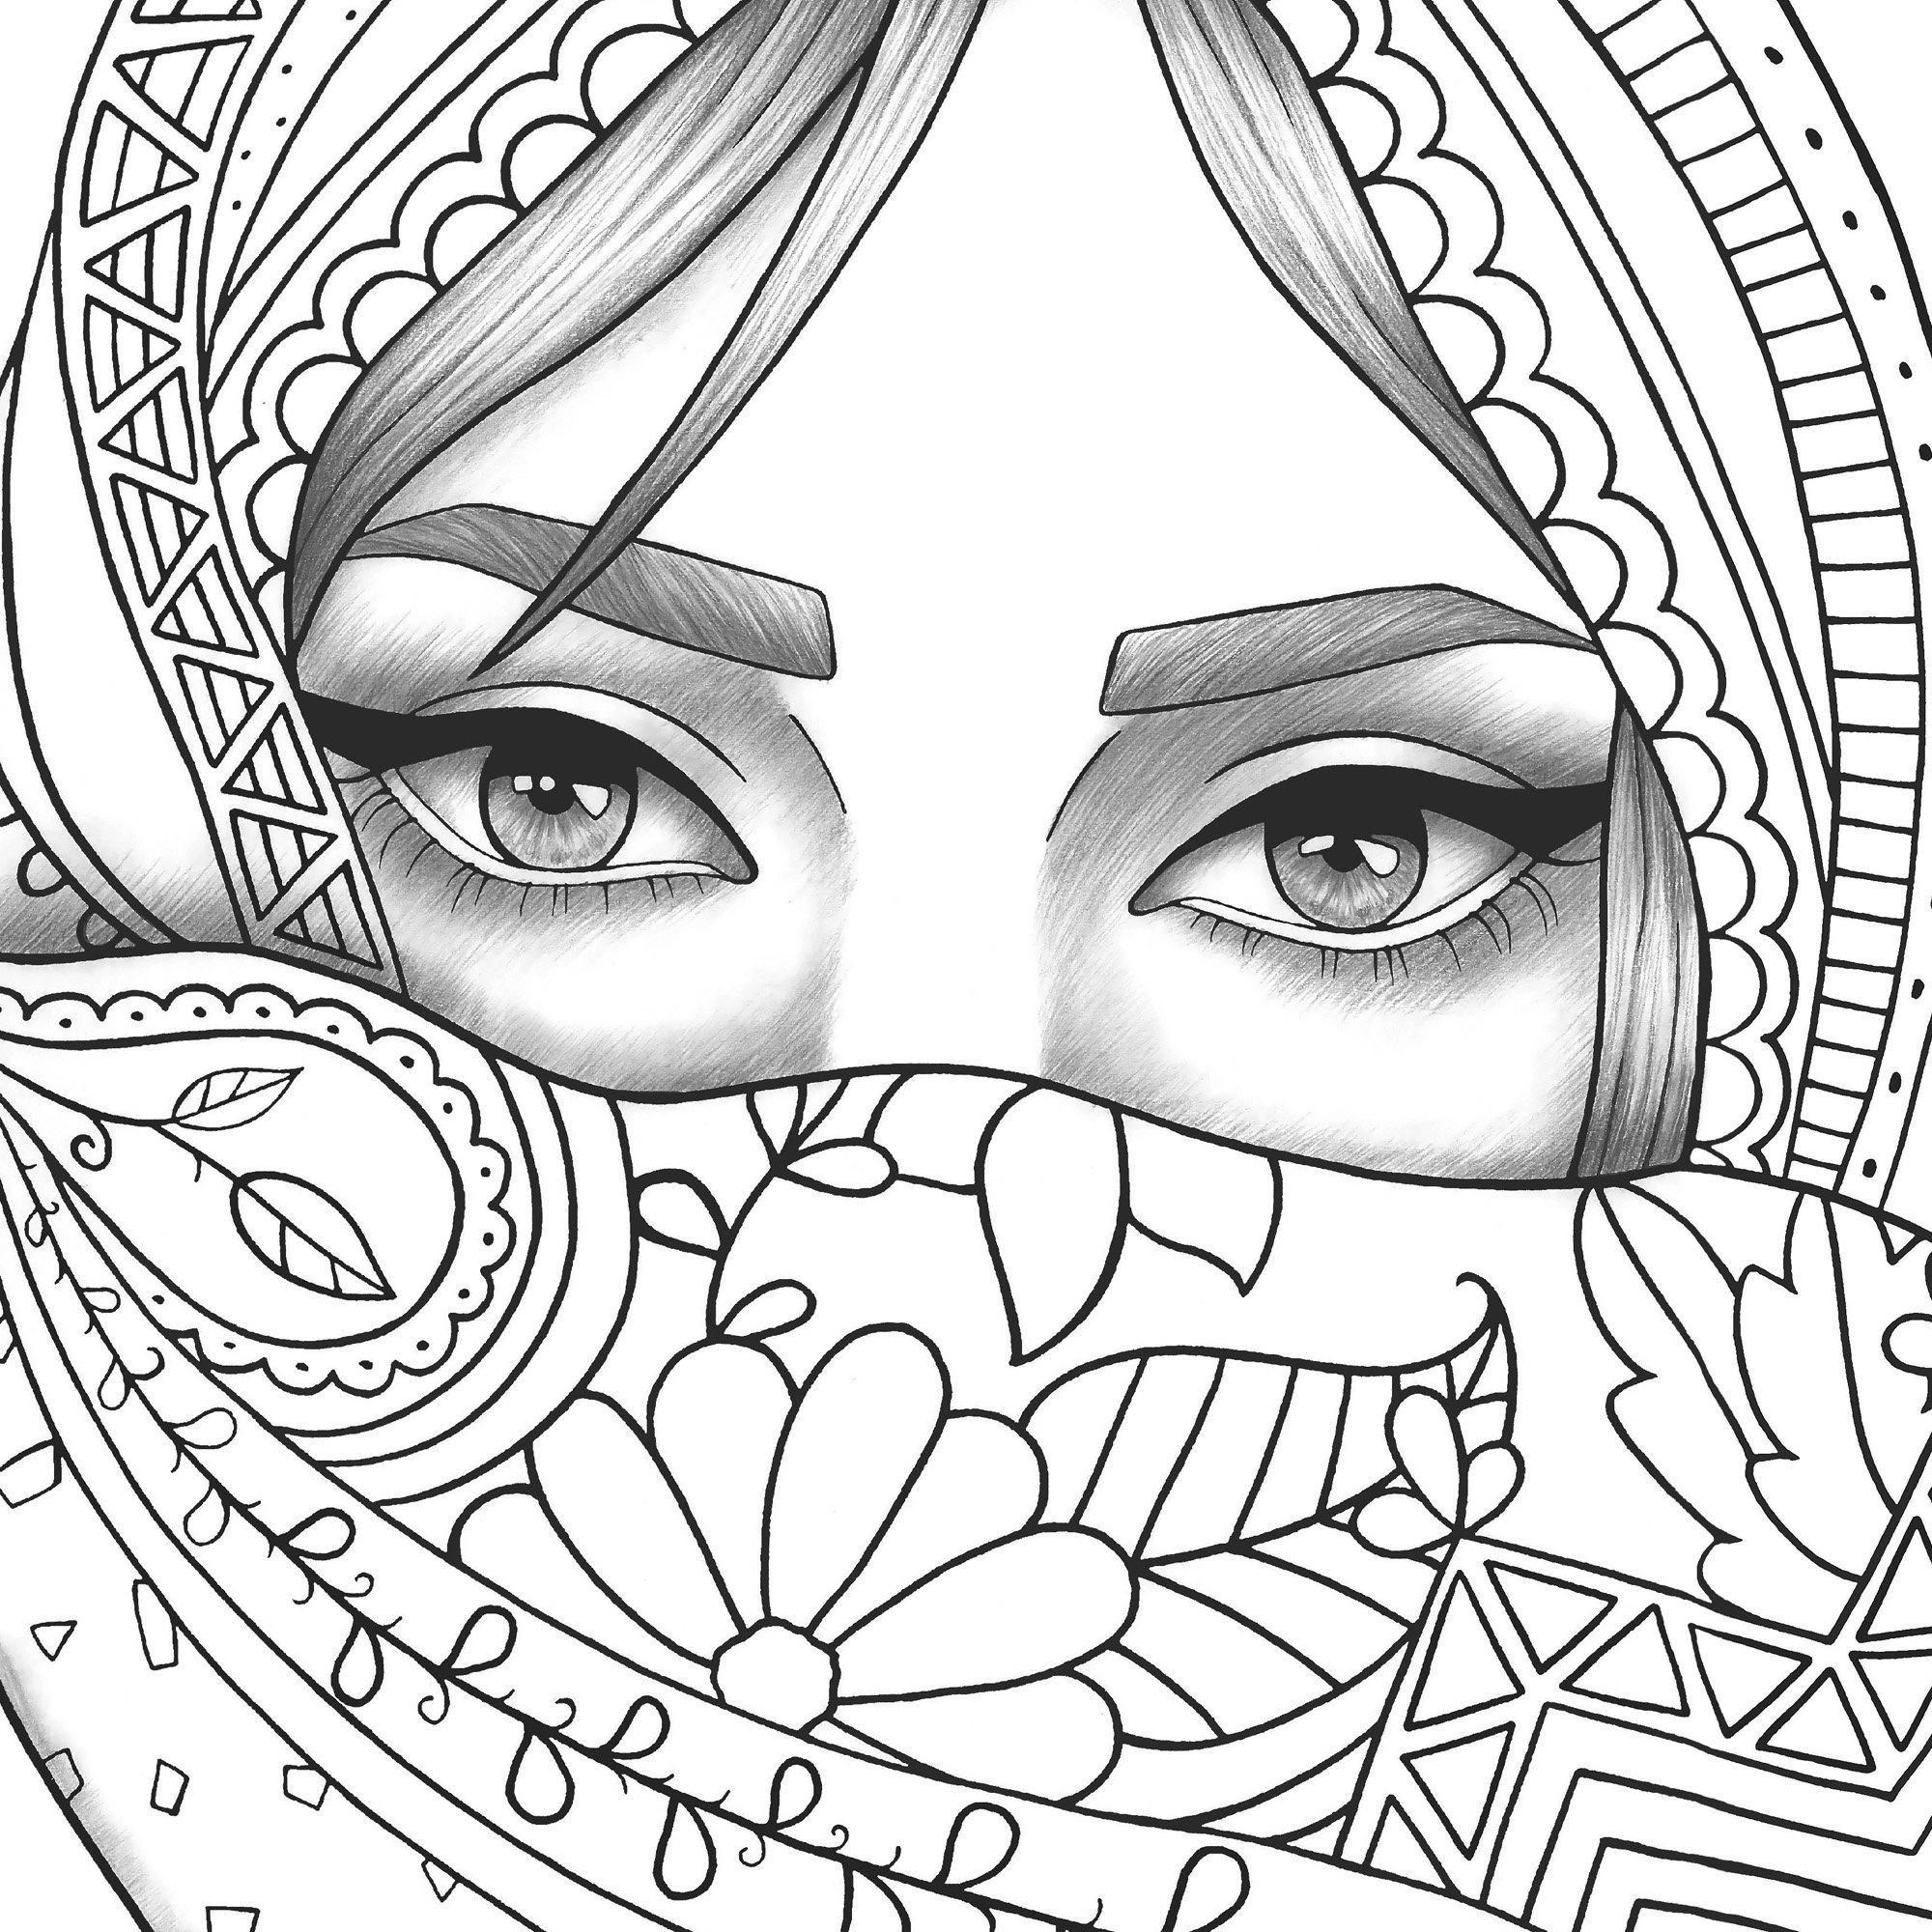 coloring girl sheets adult coloring page girl portrait and clothes colouring girl sheets coloring